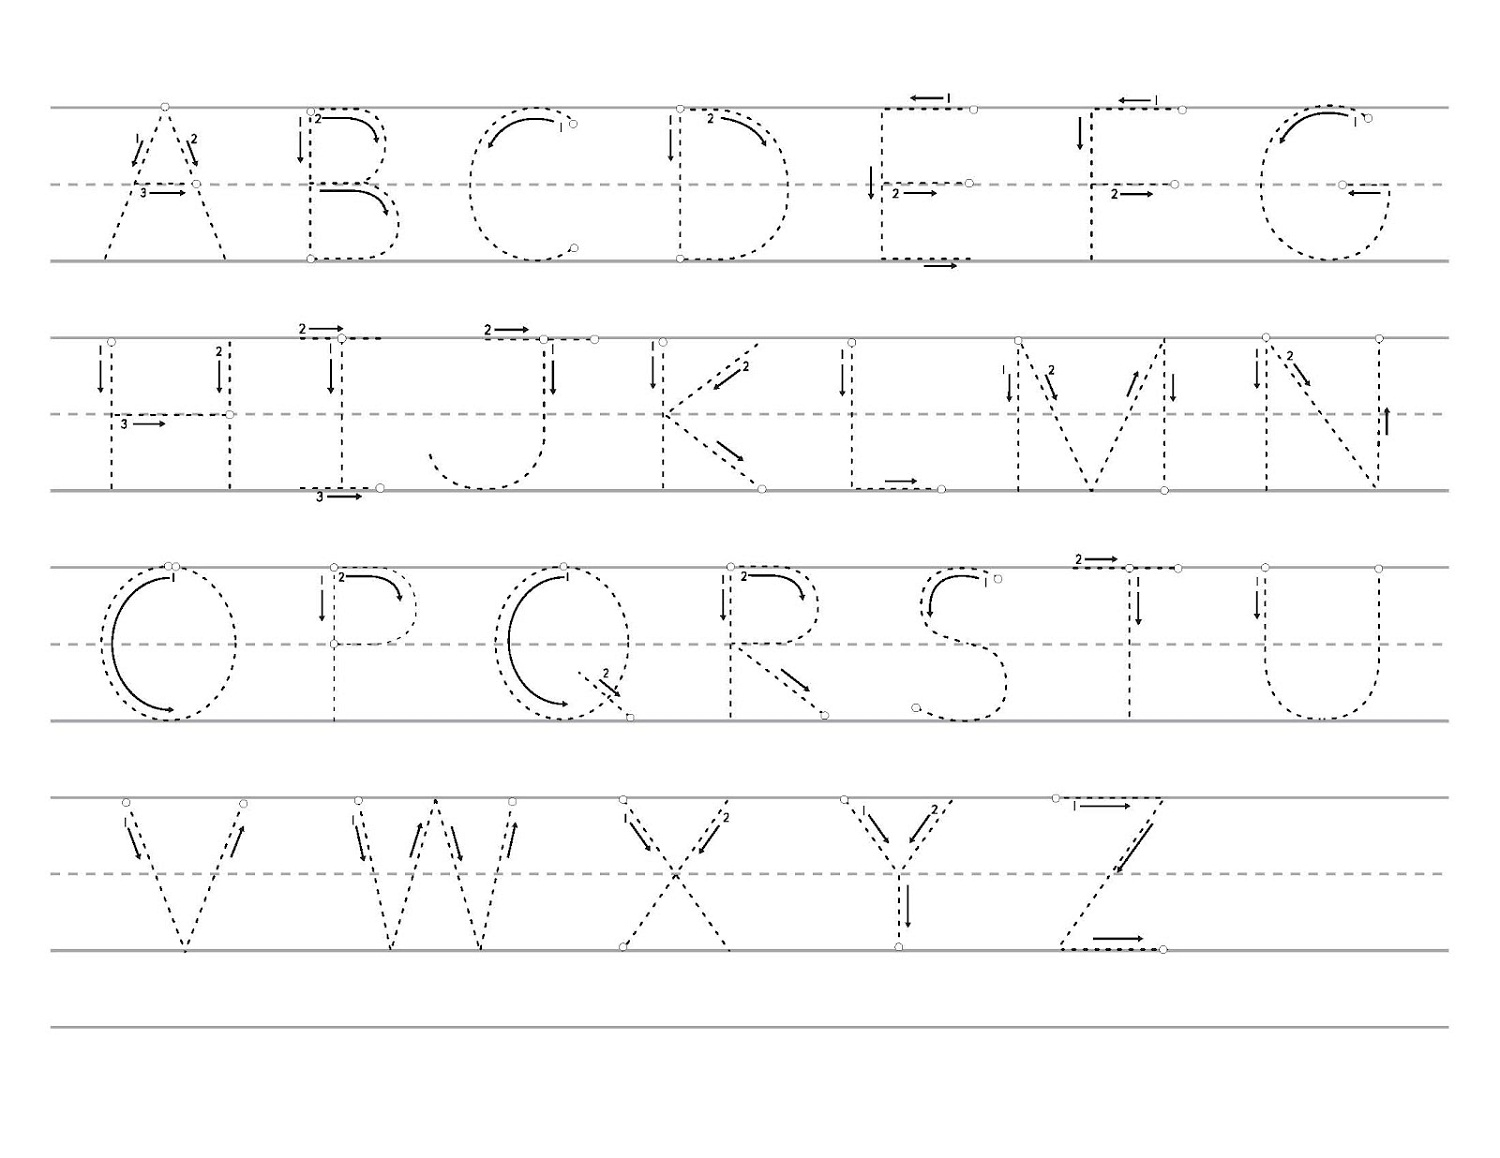 49 Outstanding Alphabet Trace Sheets Printables inside Alphabet Tracing A-Z Pdf